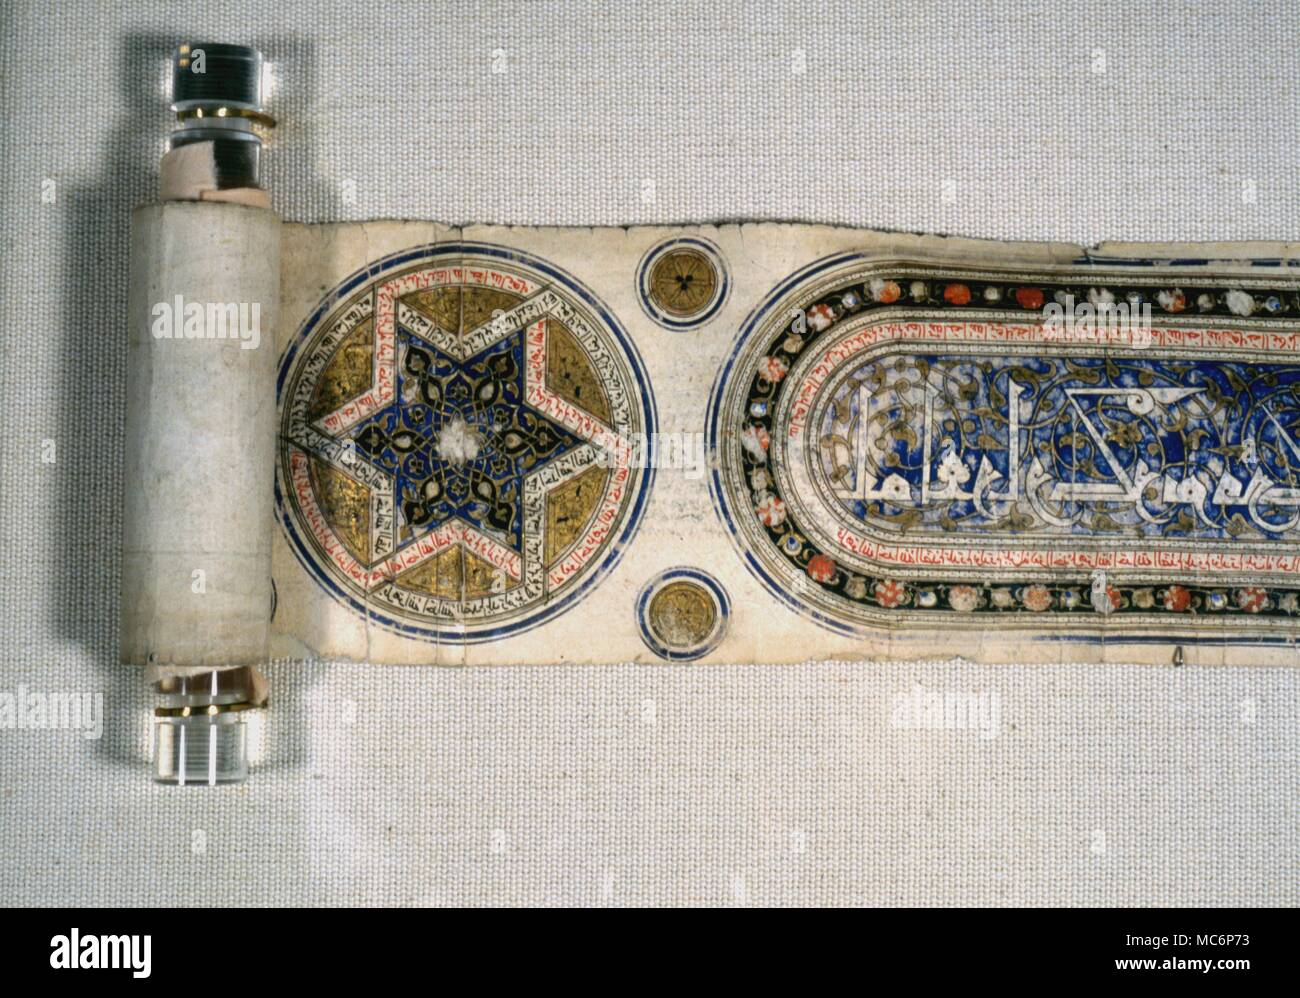 Symbols Star Six Pointed Star Intended For Amuletic Use On An